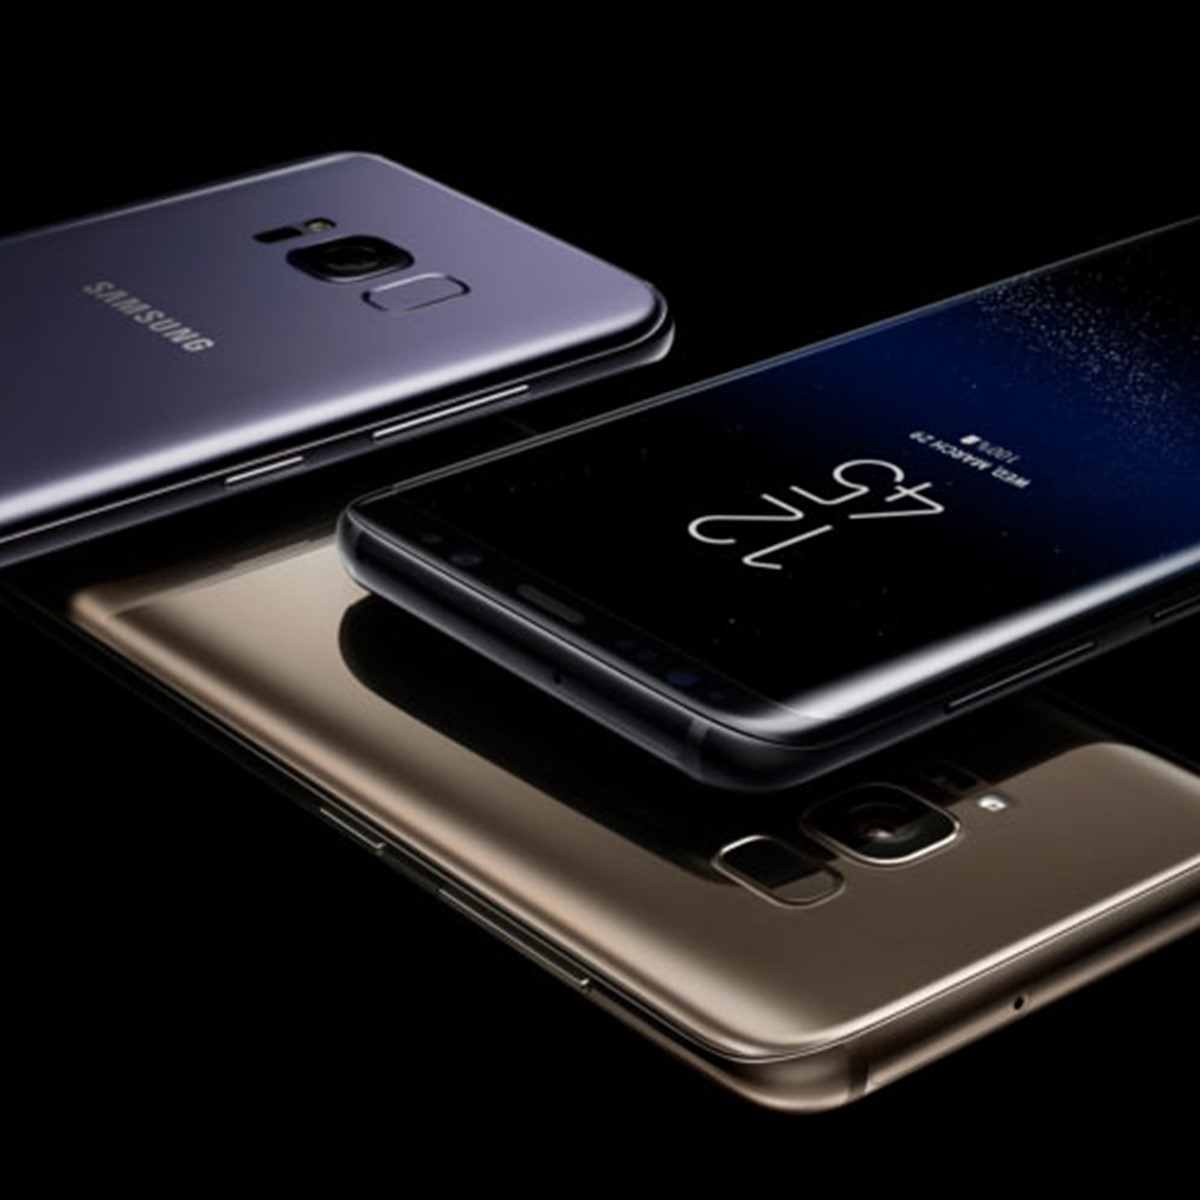 Samsung Galaxy S8 And Come With Infinity Display Multi S7 Edge Lte 128gb Absolute Black Frame Processing Digital Photography Review